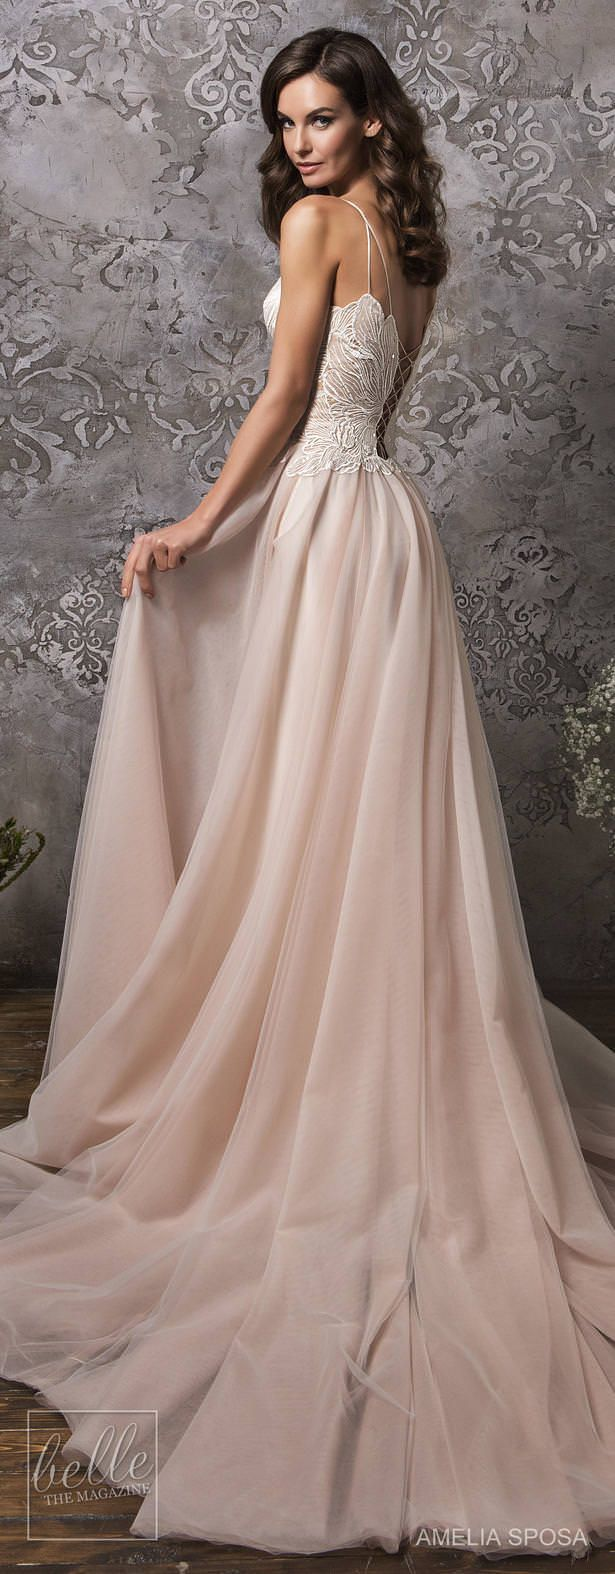 193 best Elegant Bride images on Pinterest